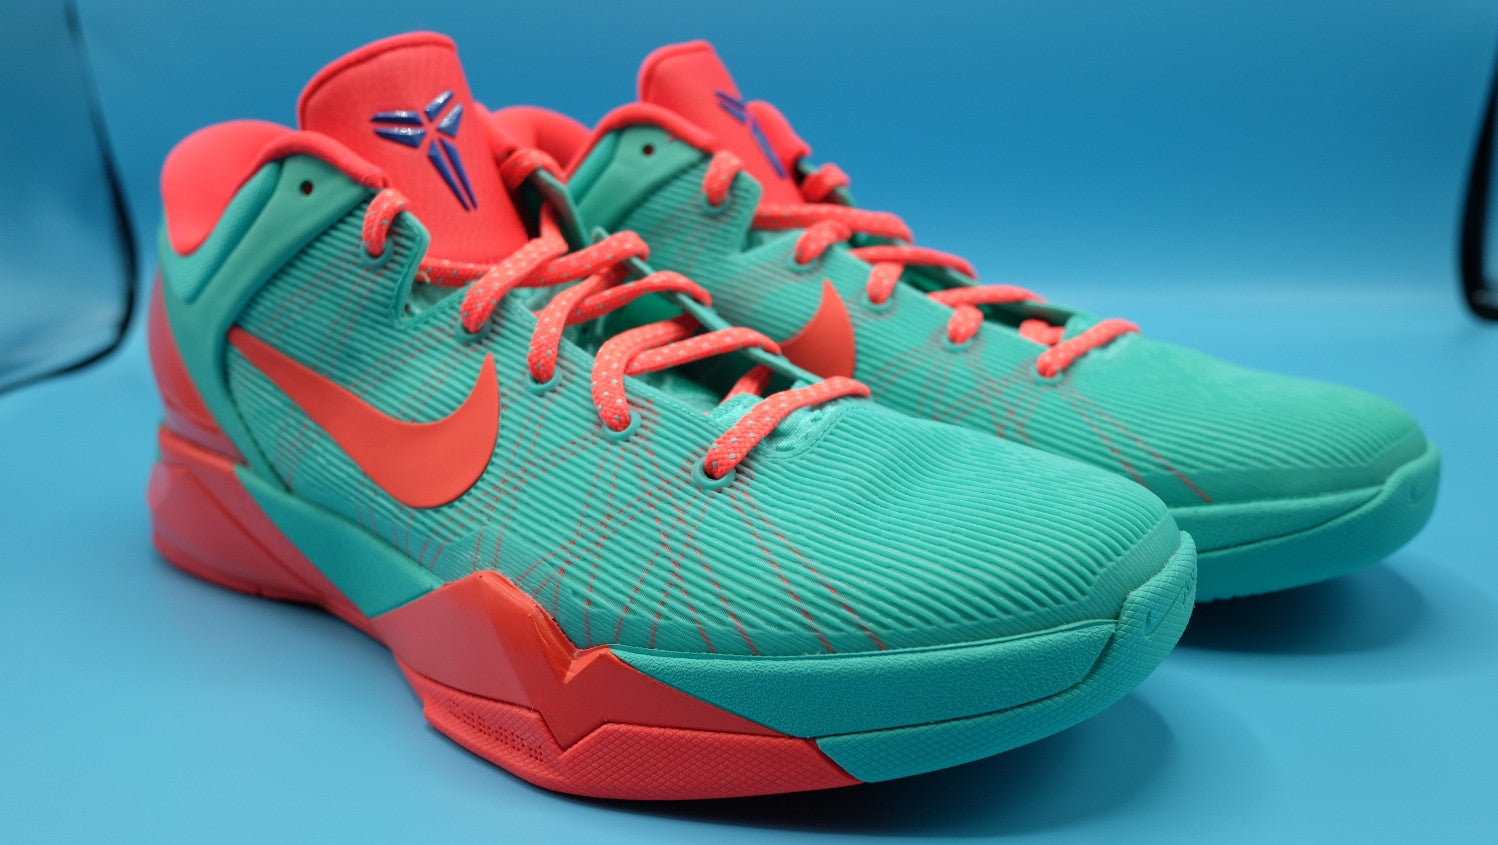 innovative design c72ed 82c16 Nike Zoom kobe 7   FC Barcelona Blue Teal   size 13(US)